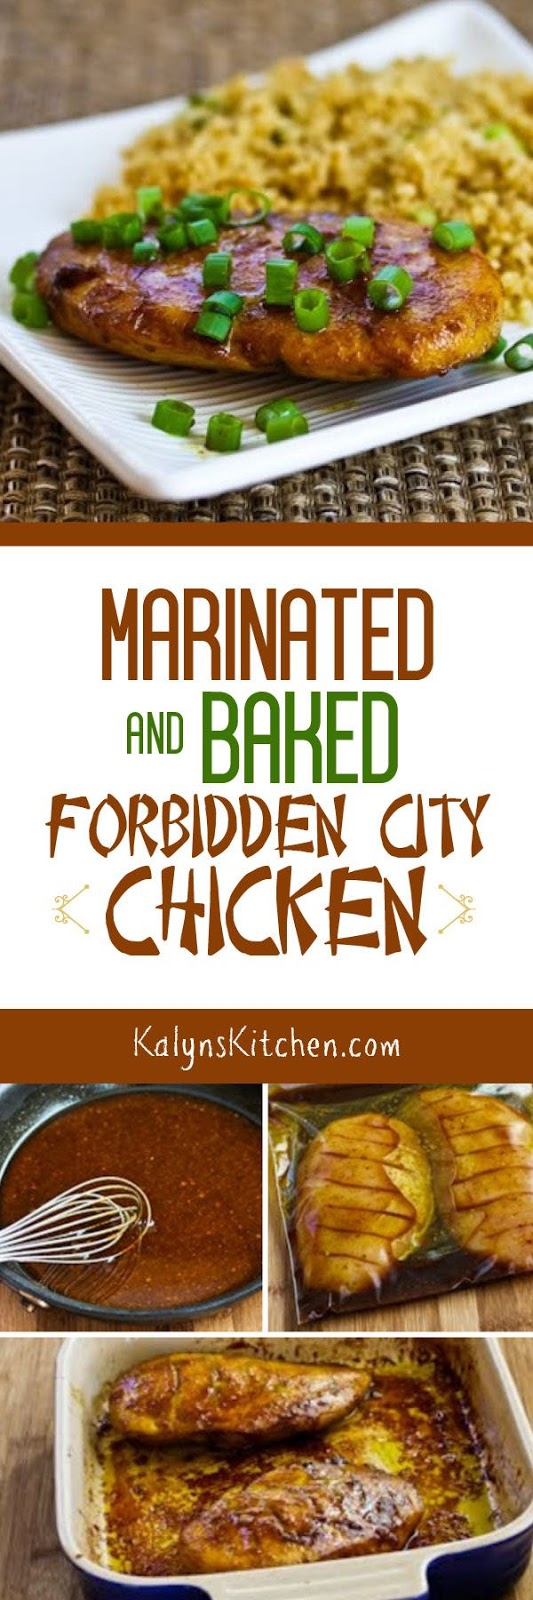 Marinated And Baked Forbidden City Chicken Kalyn S Kitchen